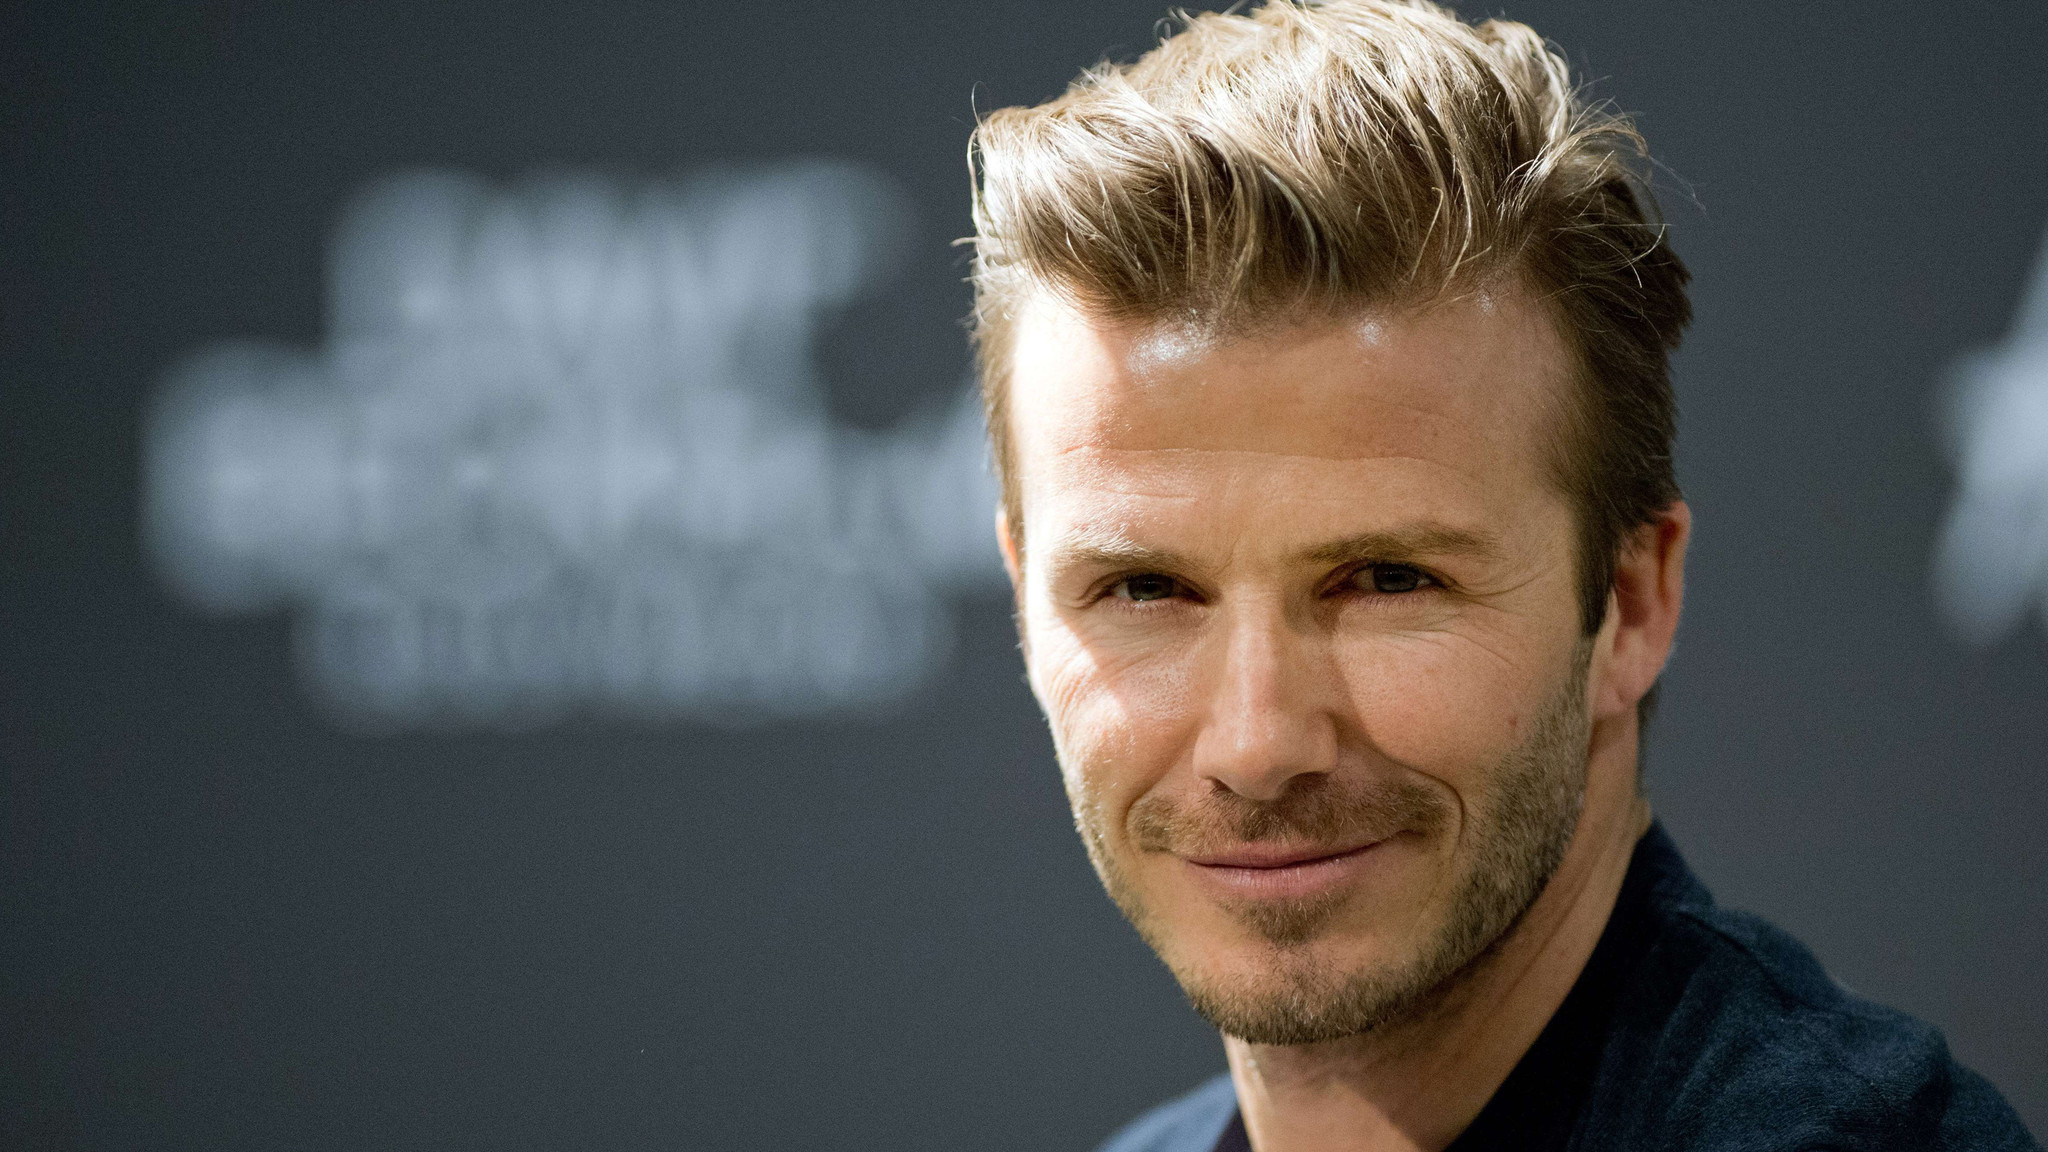 What Happened To David Beckham What s He Doing Now In 2017 The